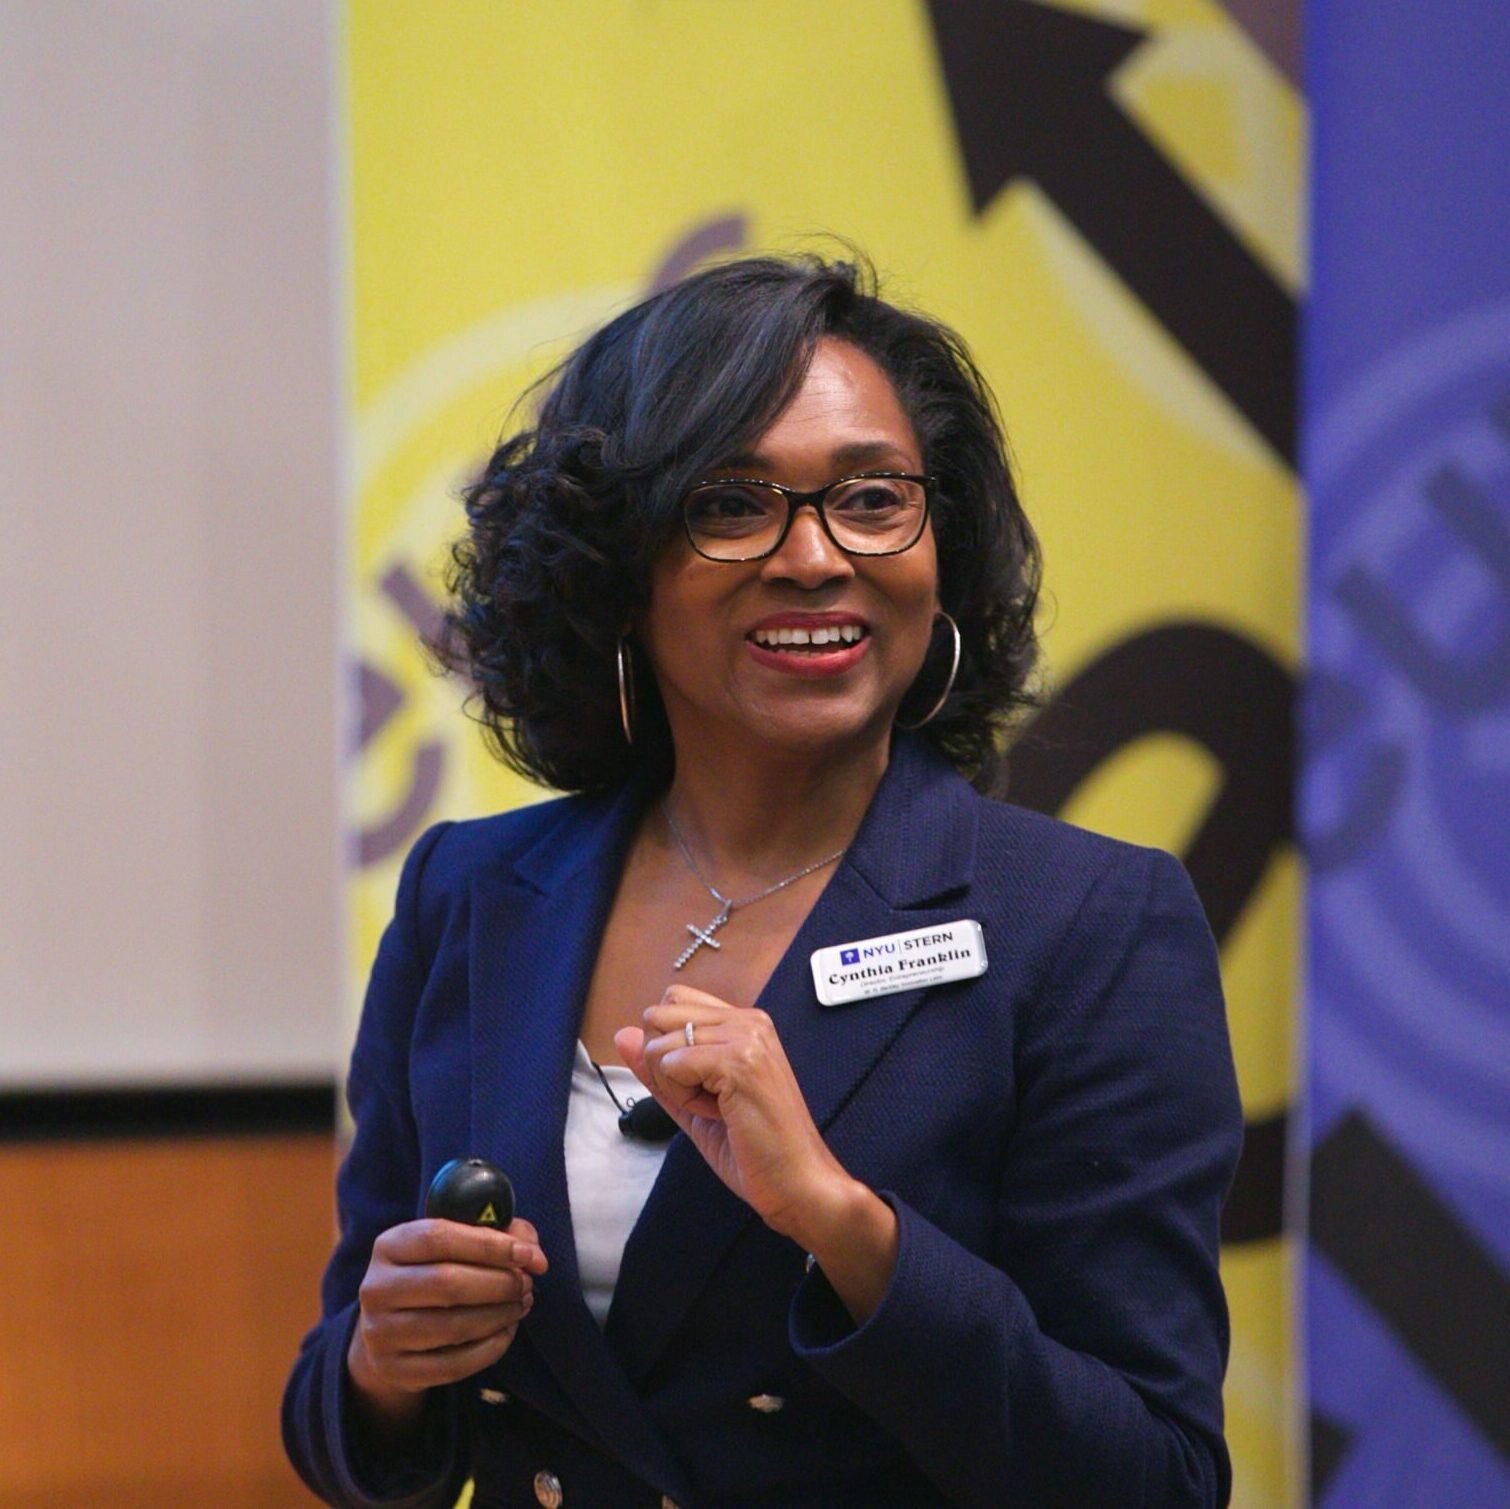 Berkley Center Director, Cynthia Franklin speaking at a Boot Camp.